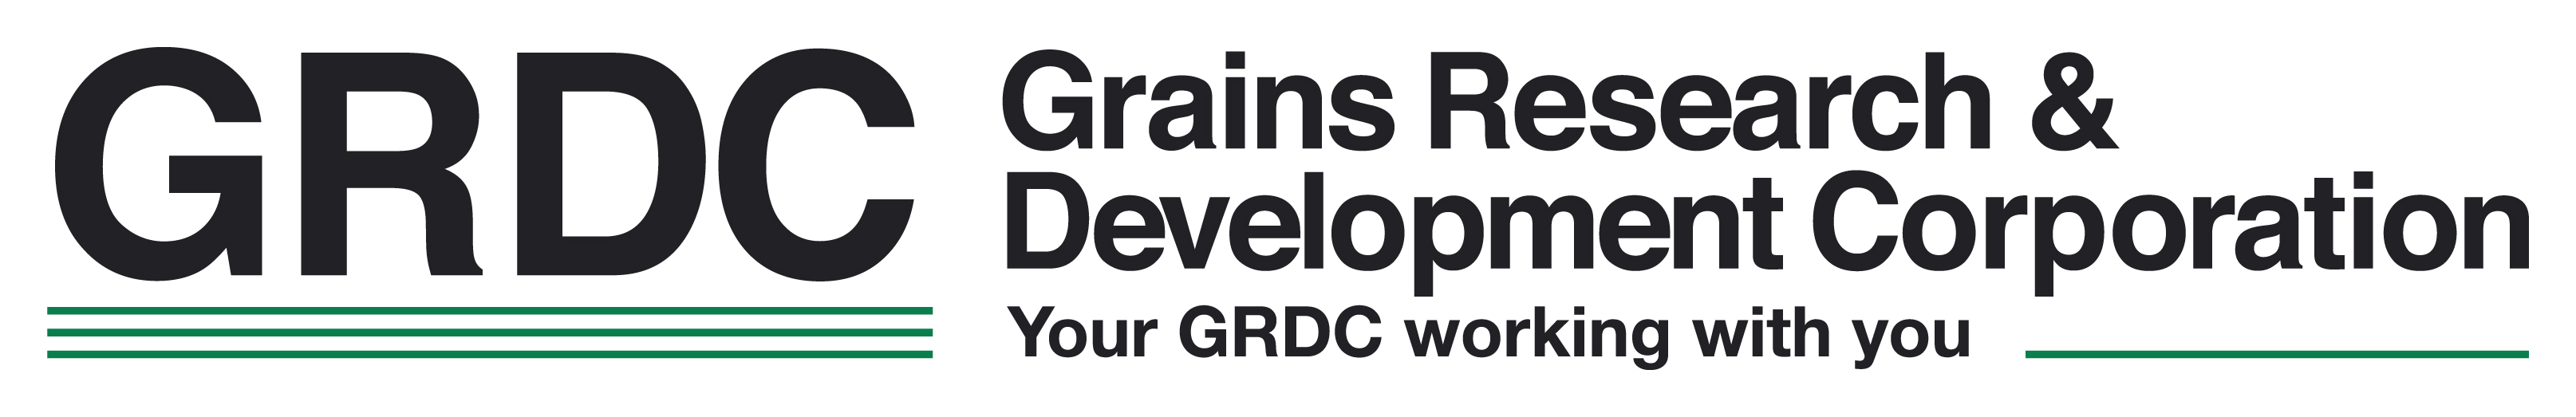 GRDC logo - inline design with tagline